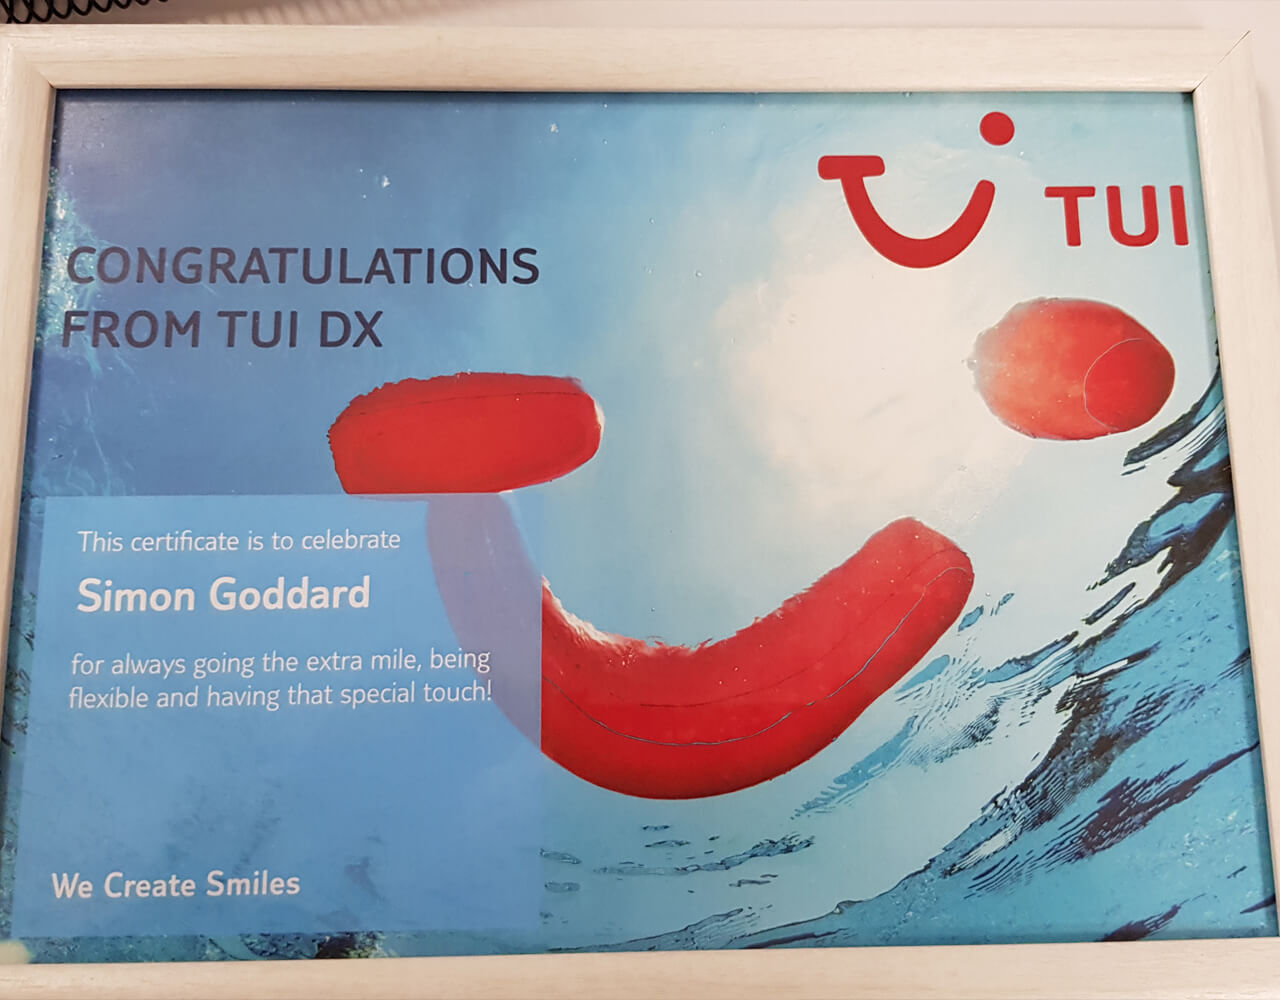 TUI Smile awards was held in Tenerife